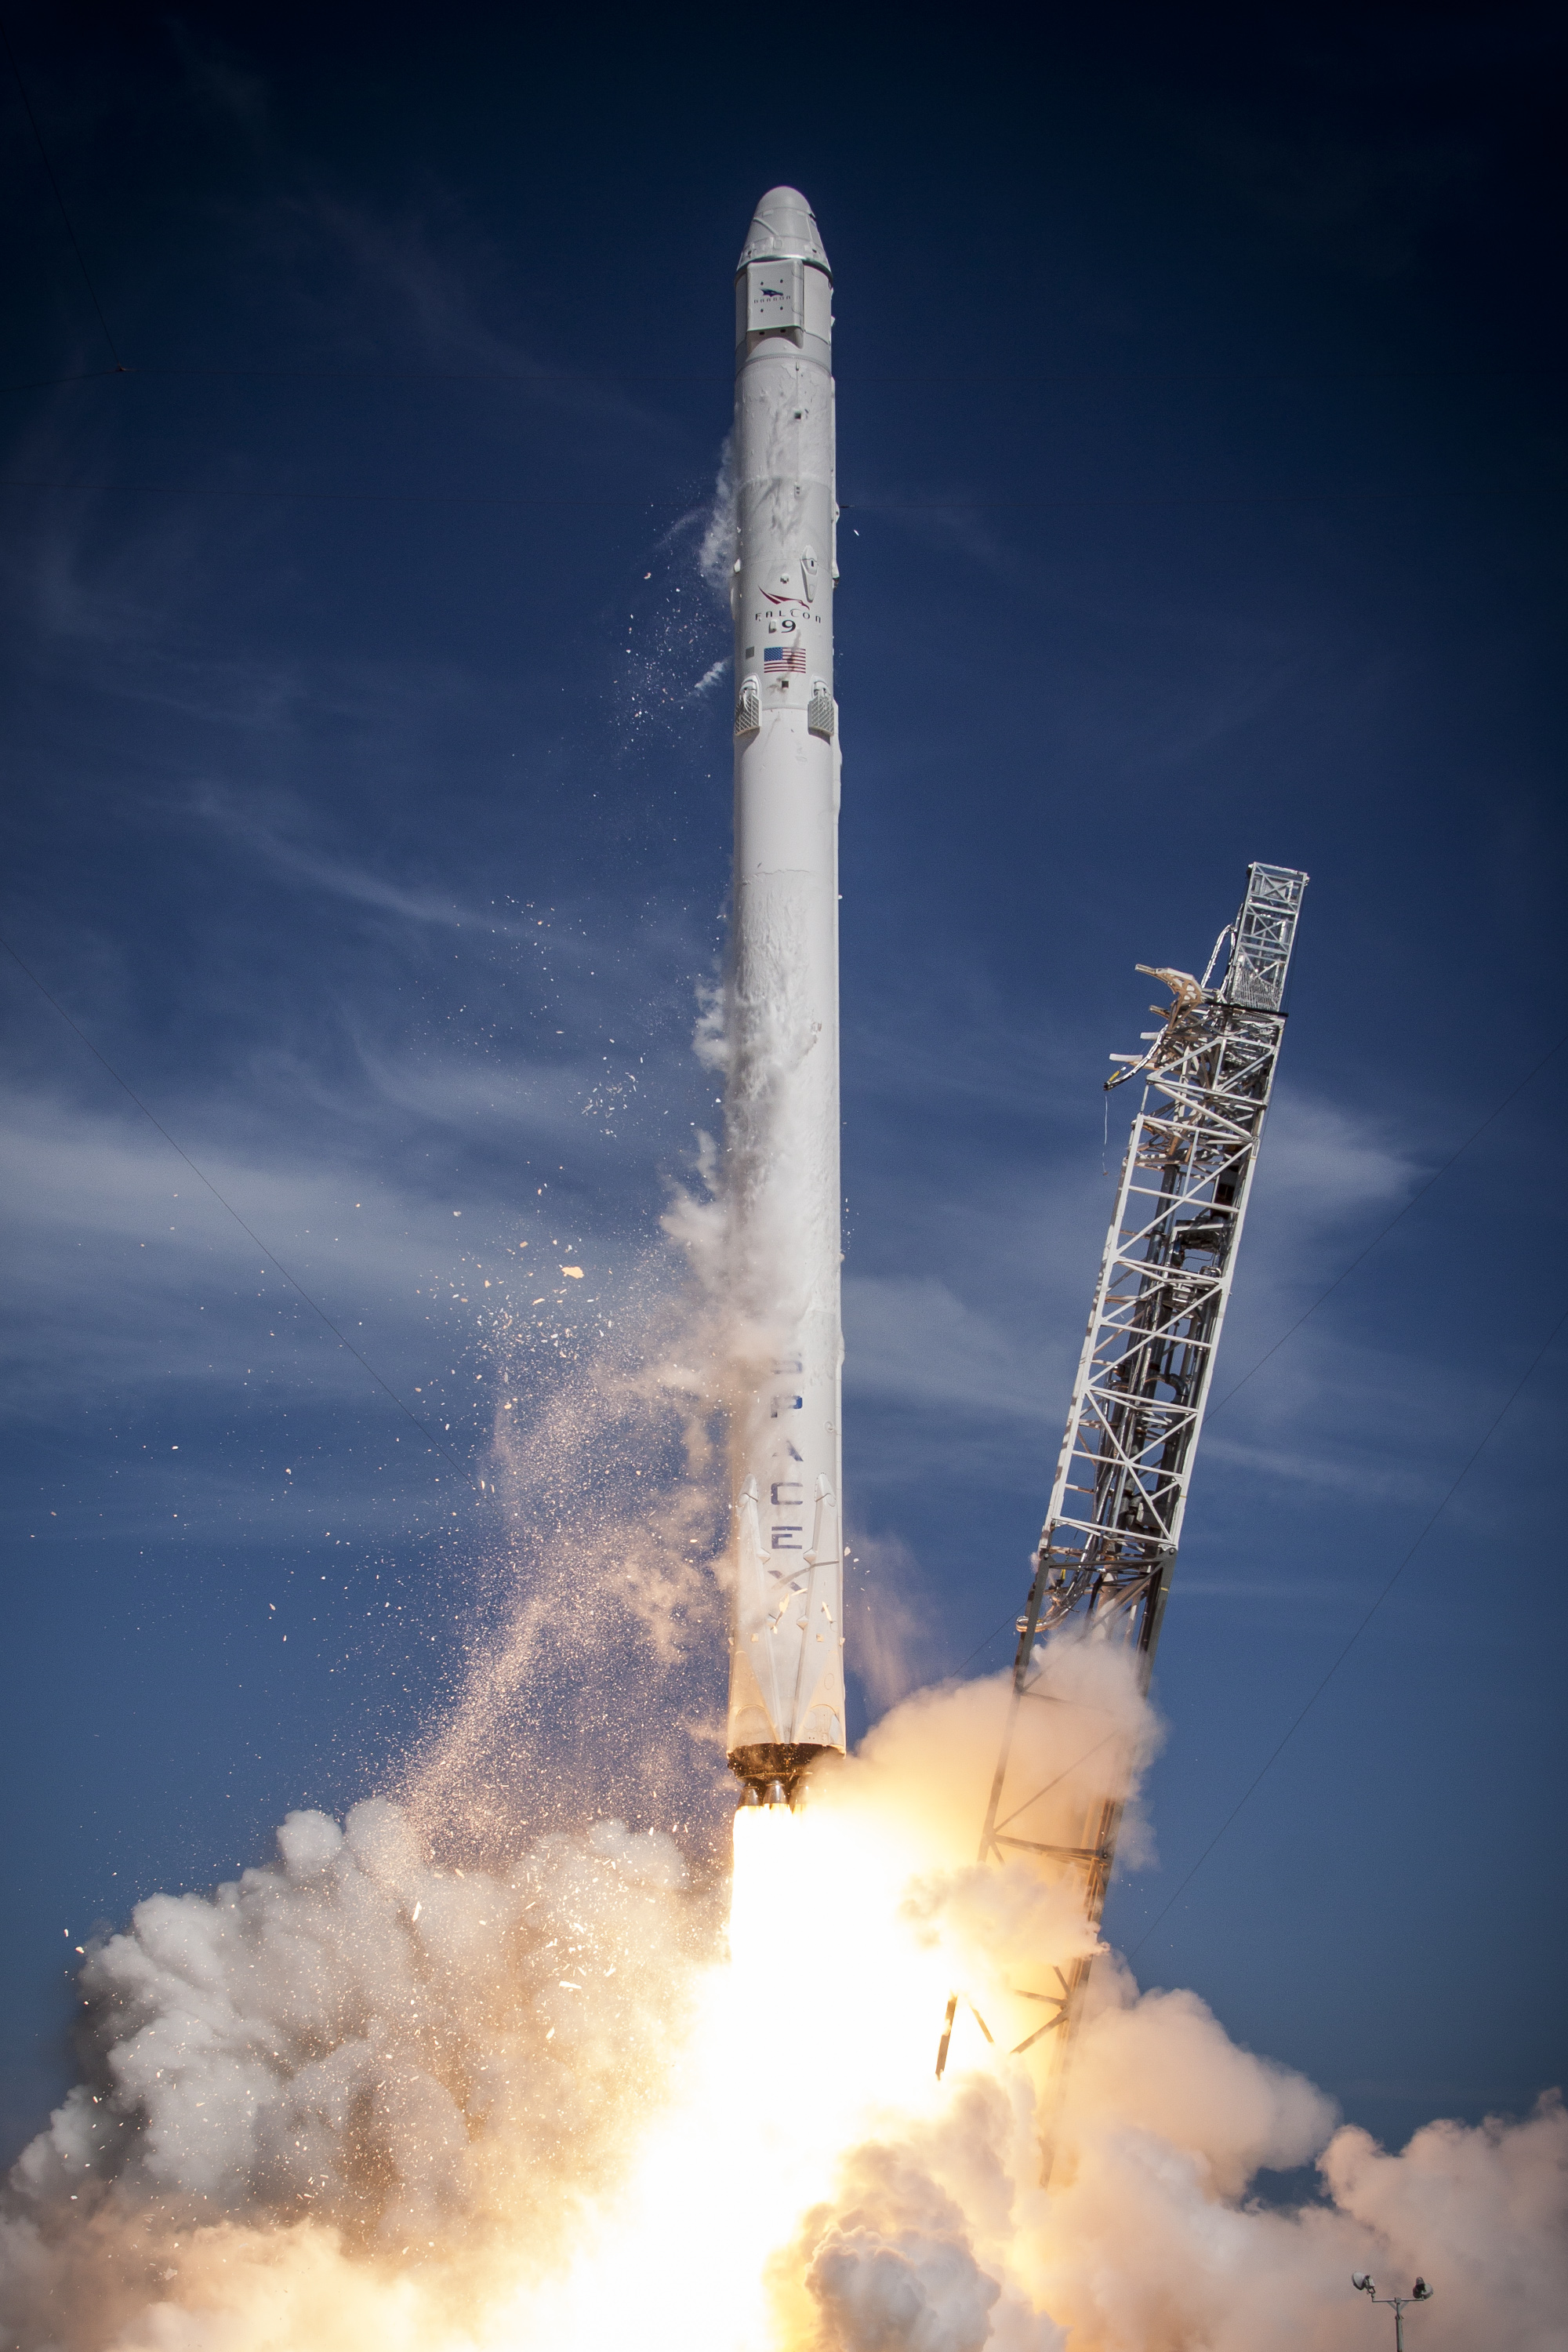 Falcon 9 launch. Photo,  in public domain, courtesy of SpaceX